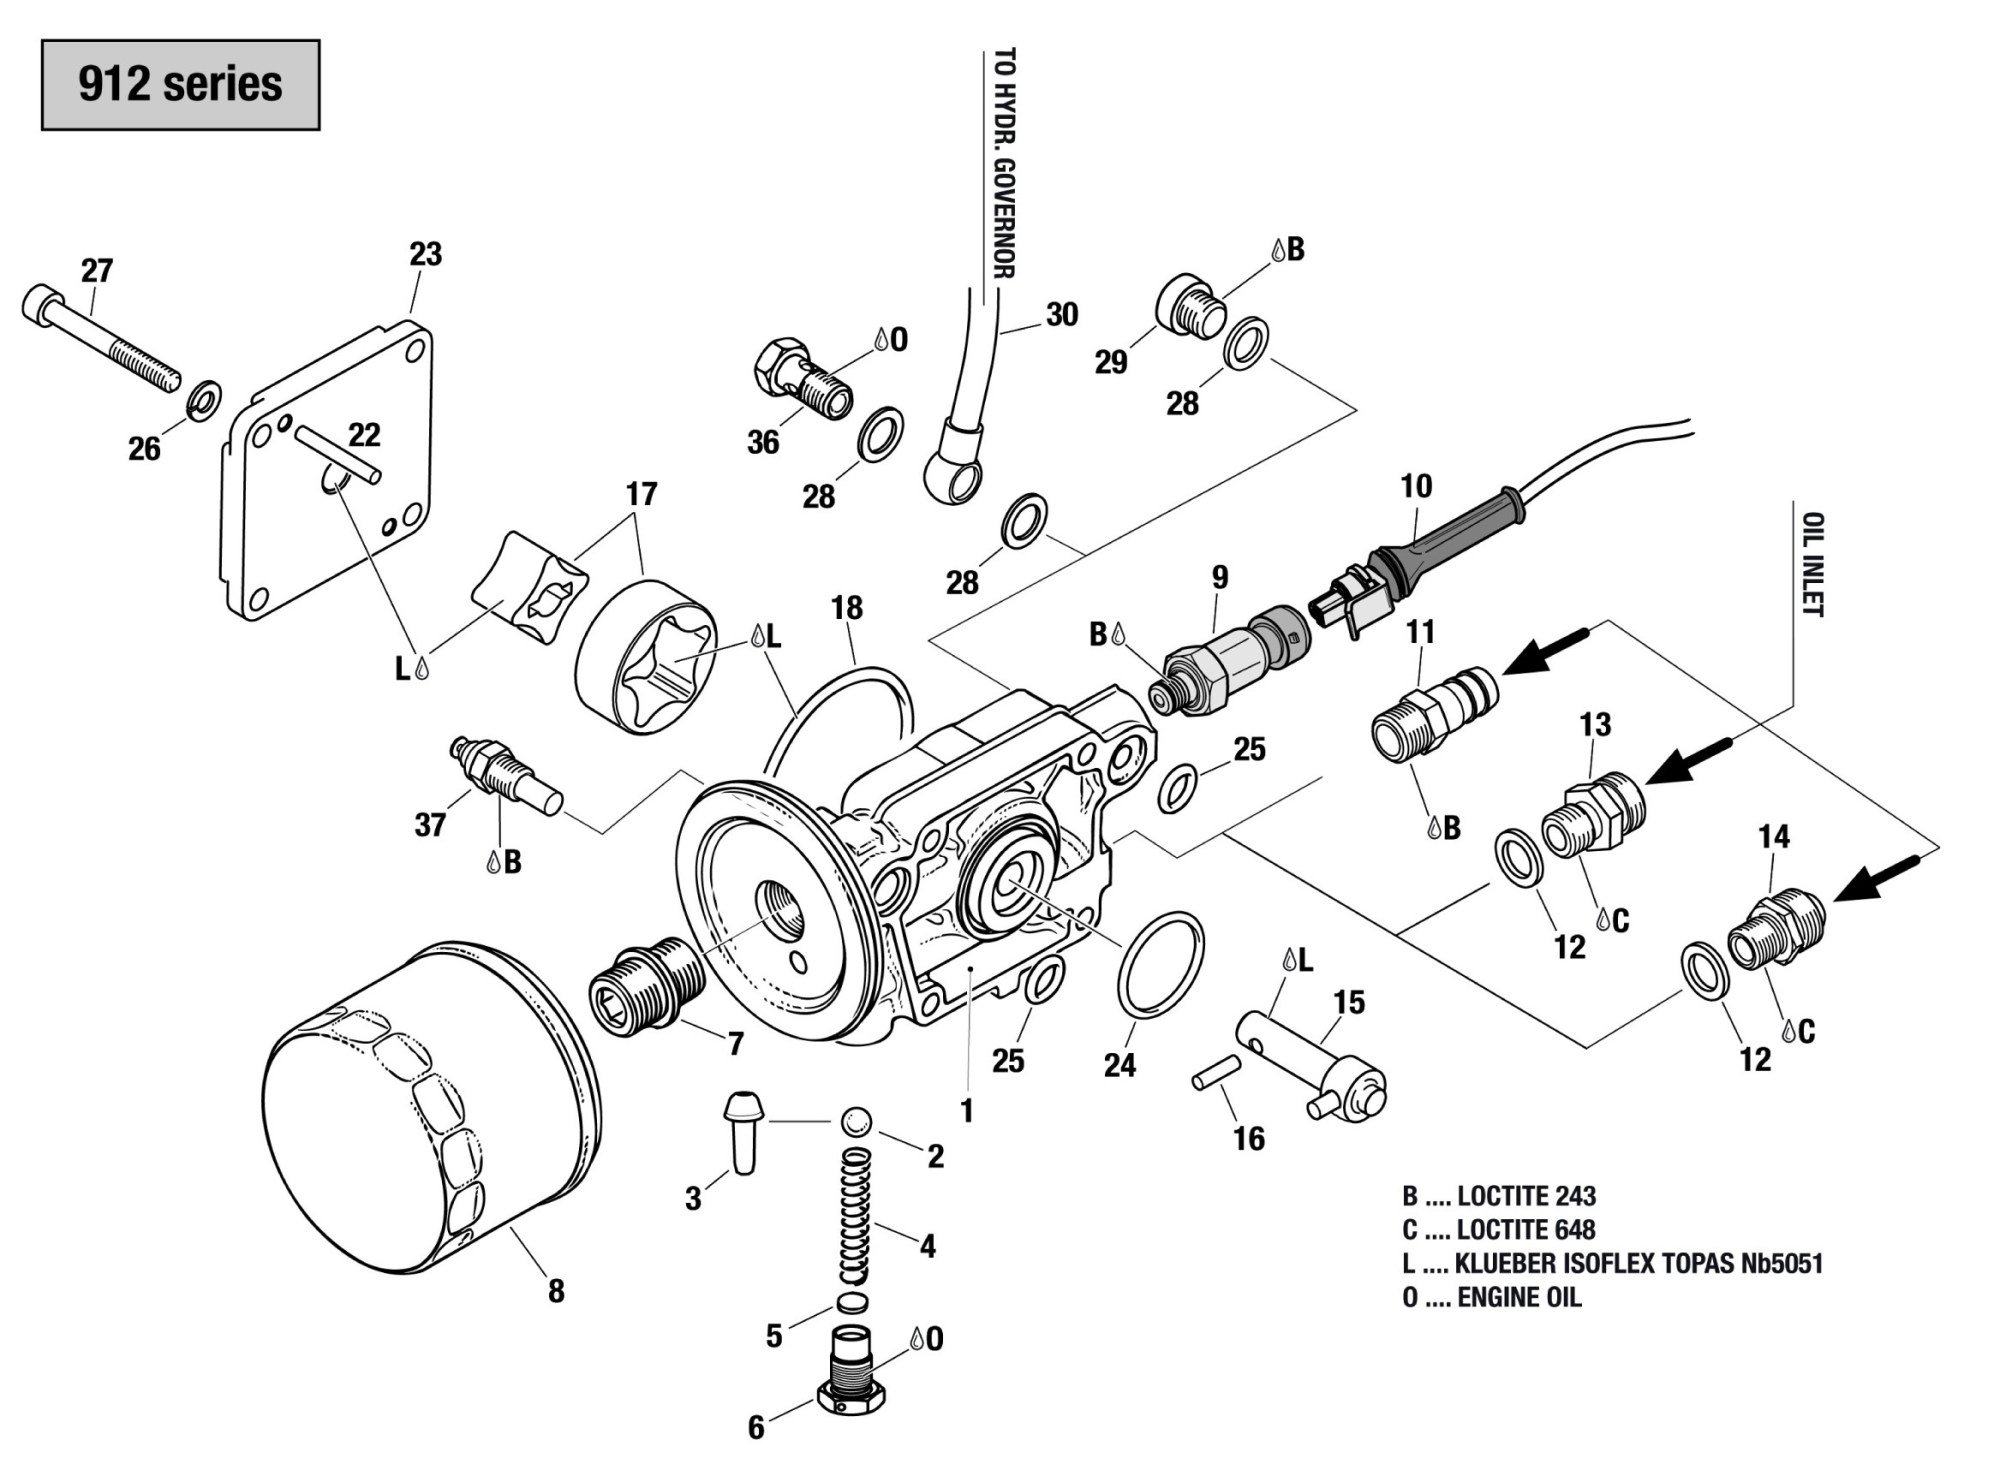 hight resolution of 914 oil pump assembly 912 oil pump assembly